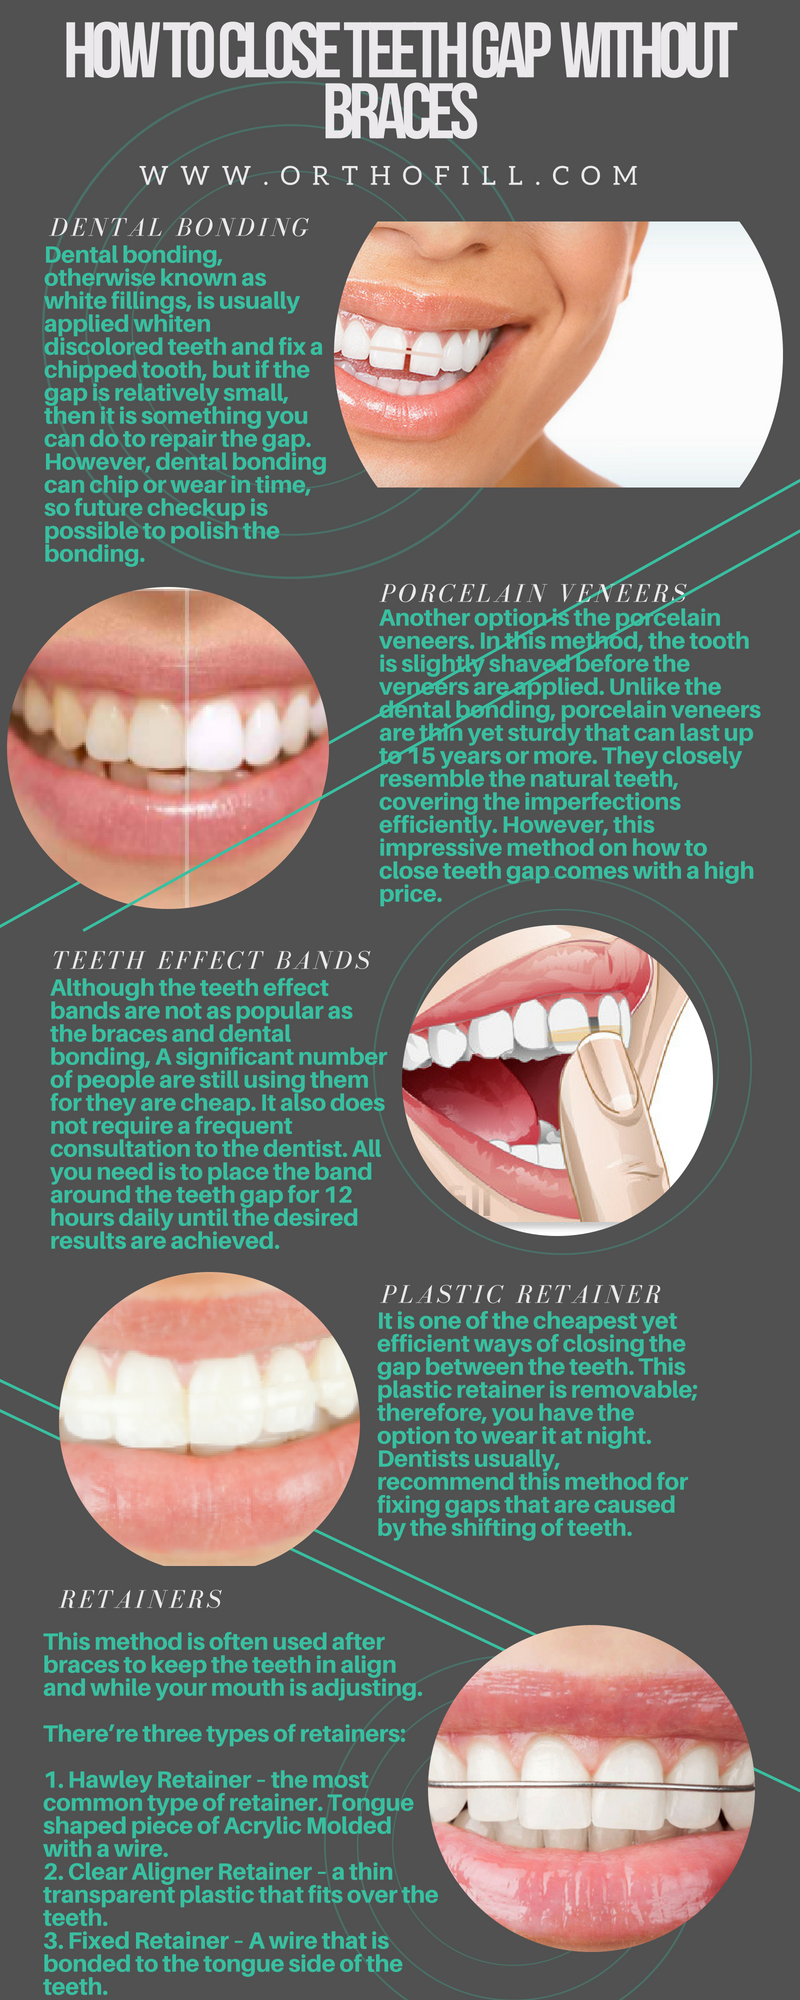 How To Close Teeth Gap Without Braces teethgap